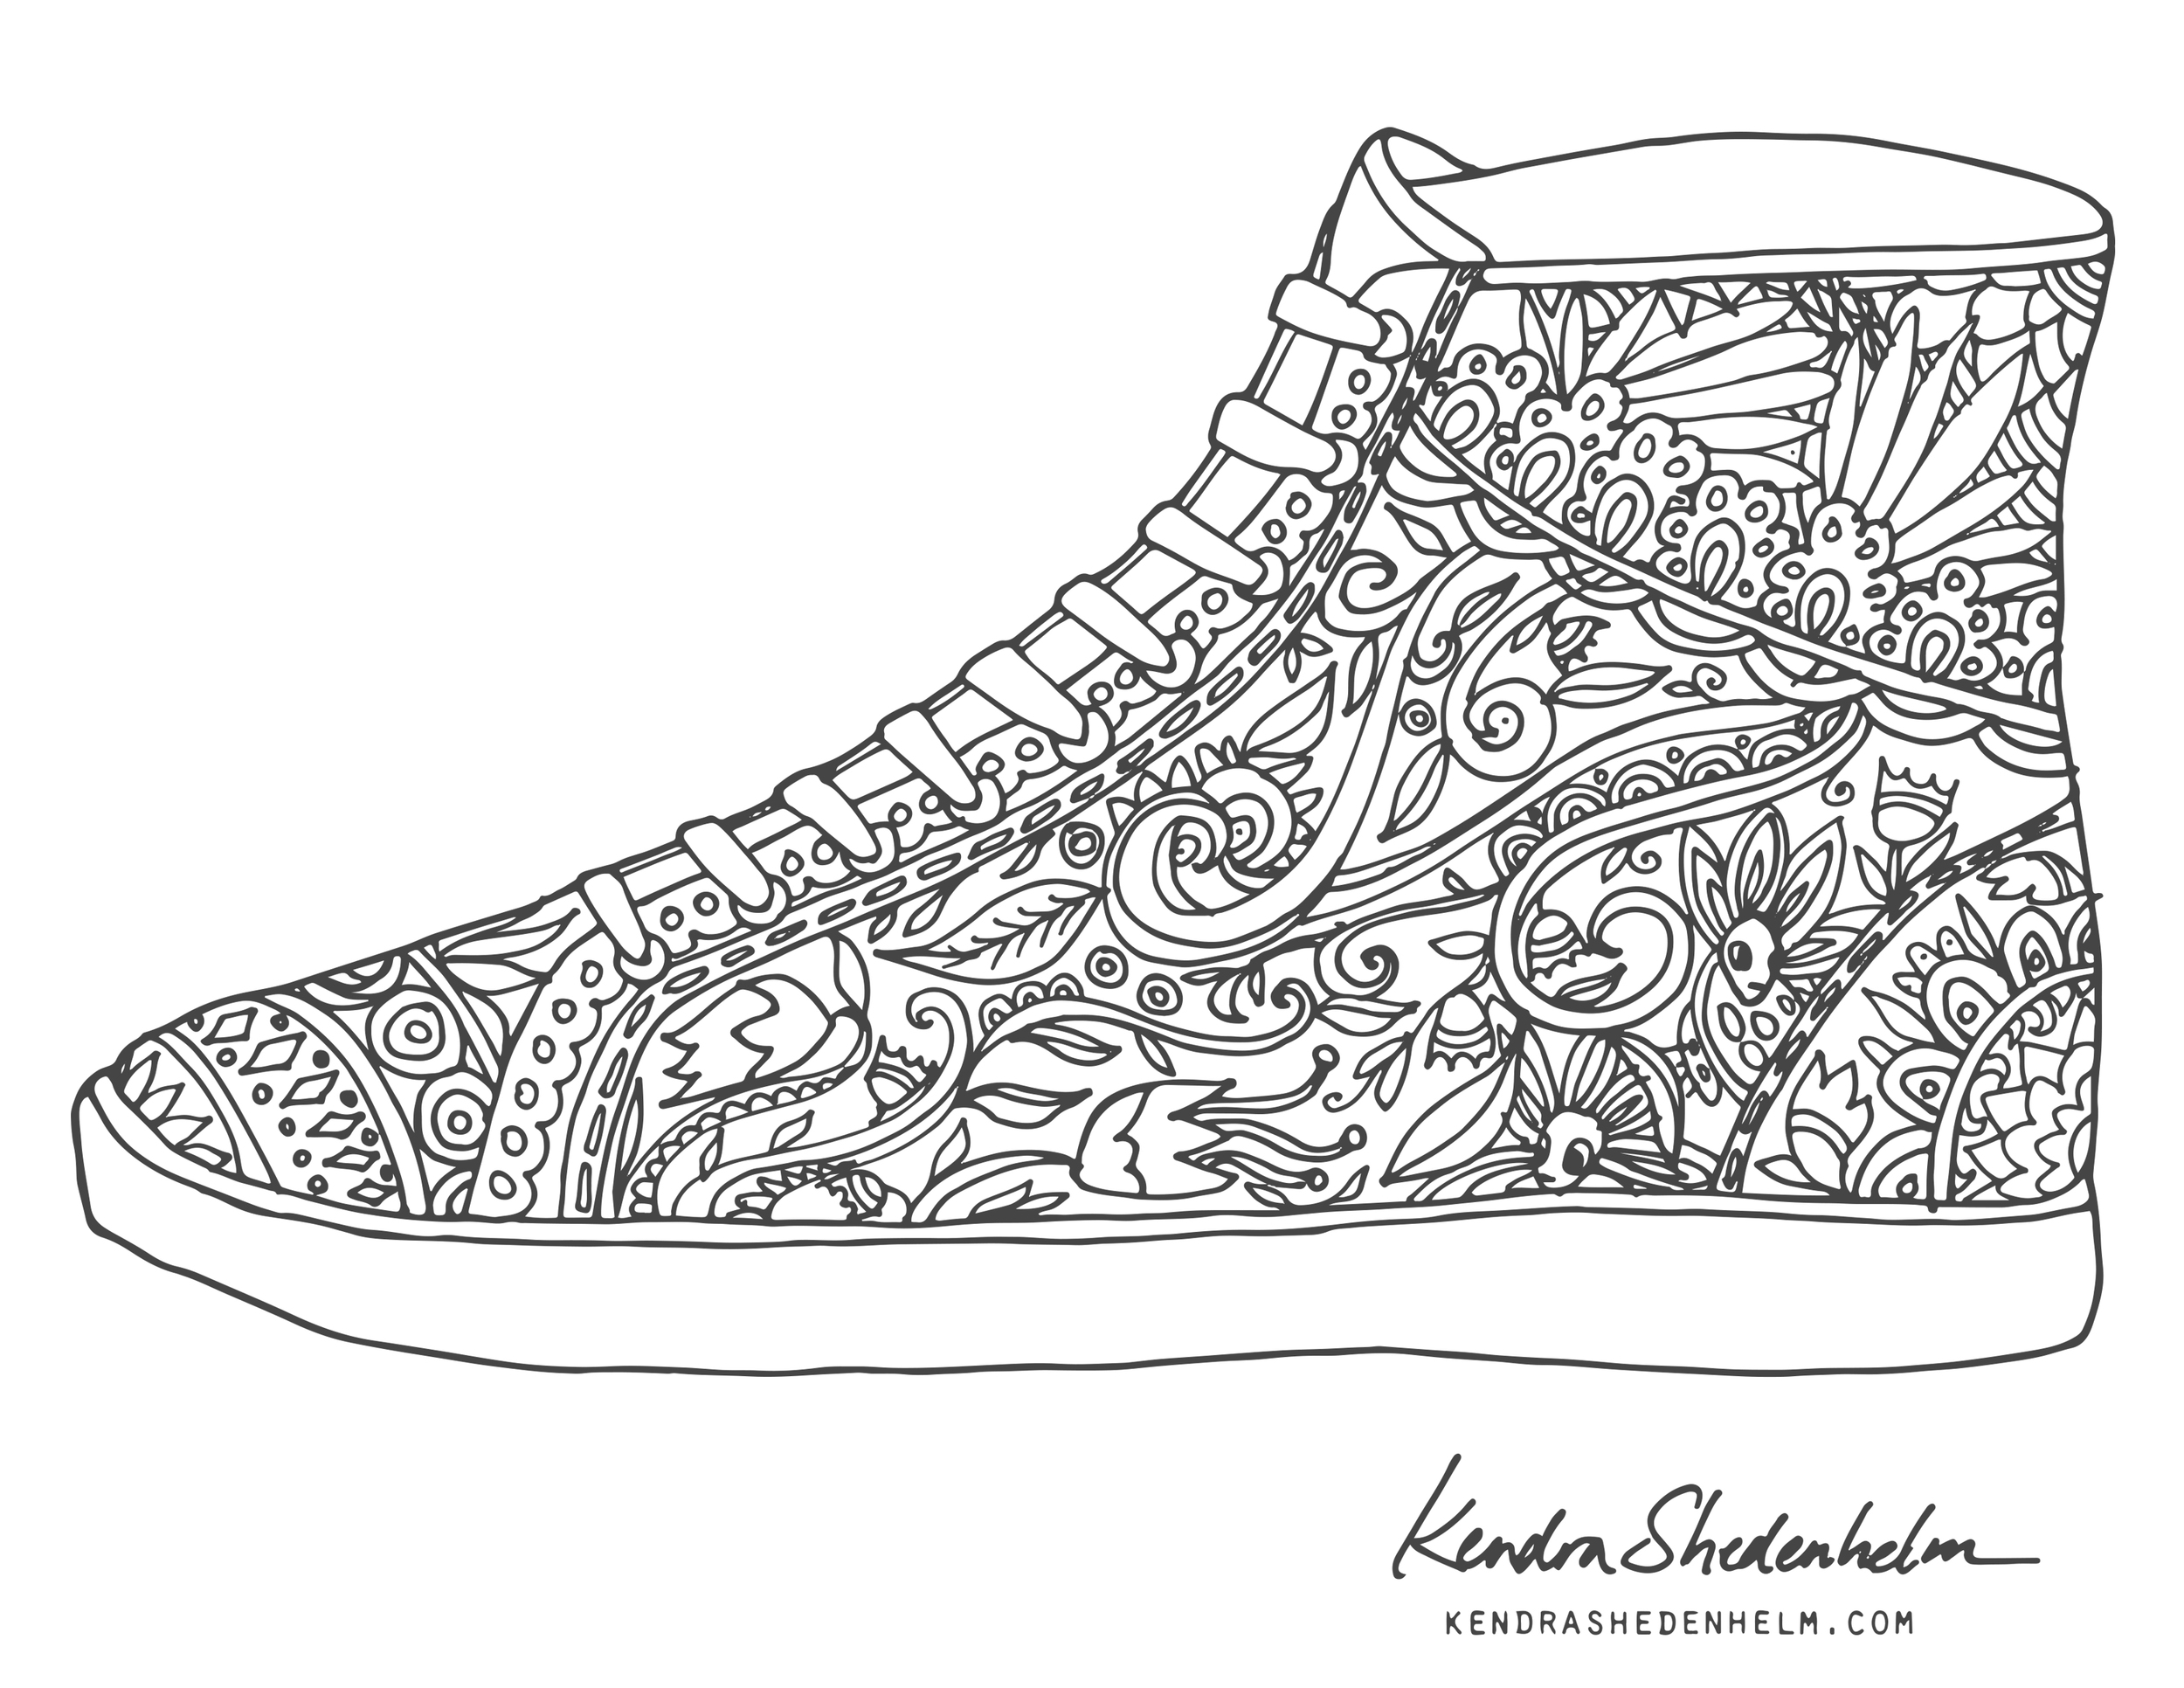 Birds Doodles Shoes And Free Coloring Pages Kendra